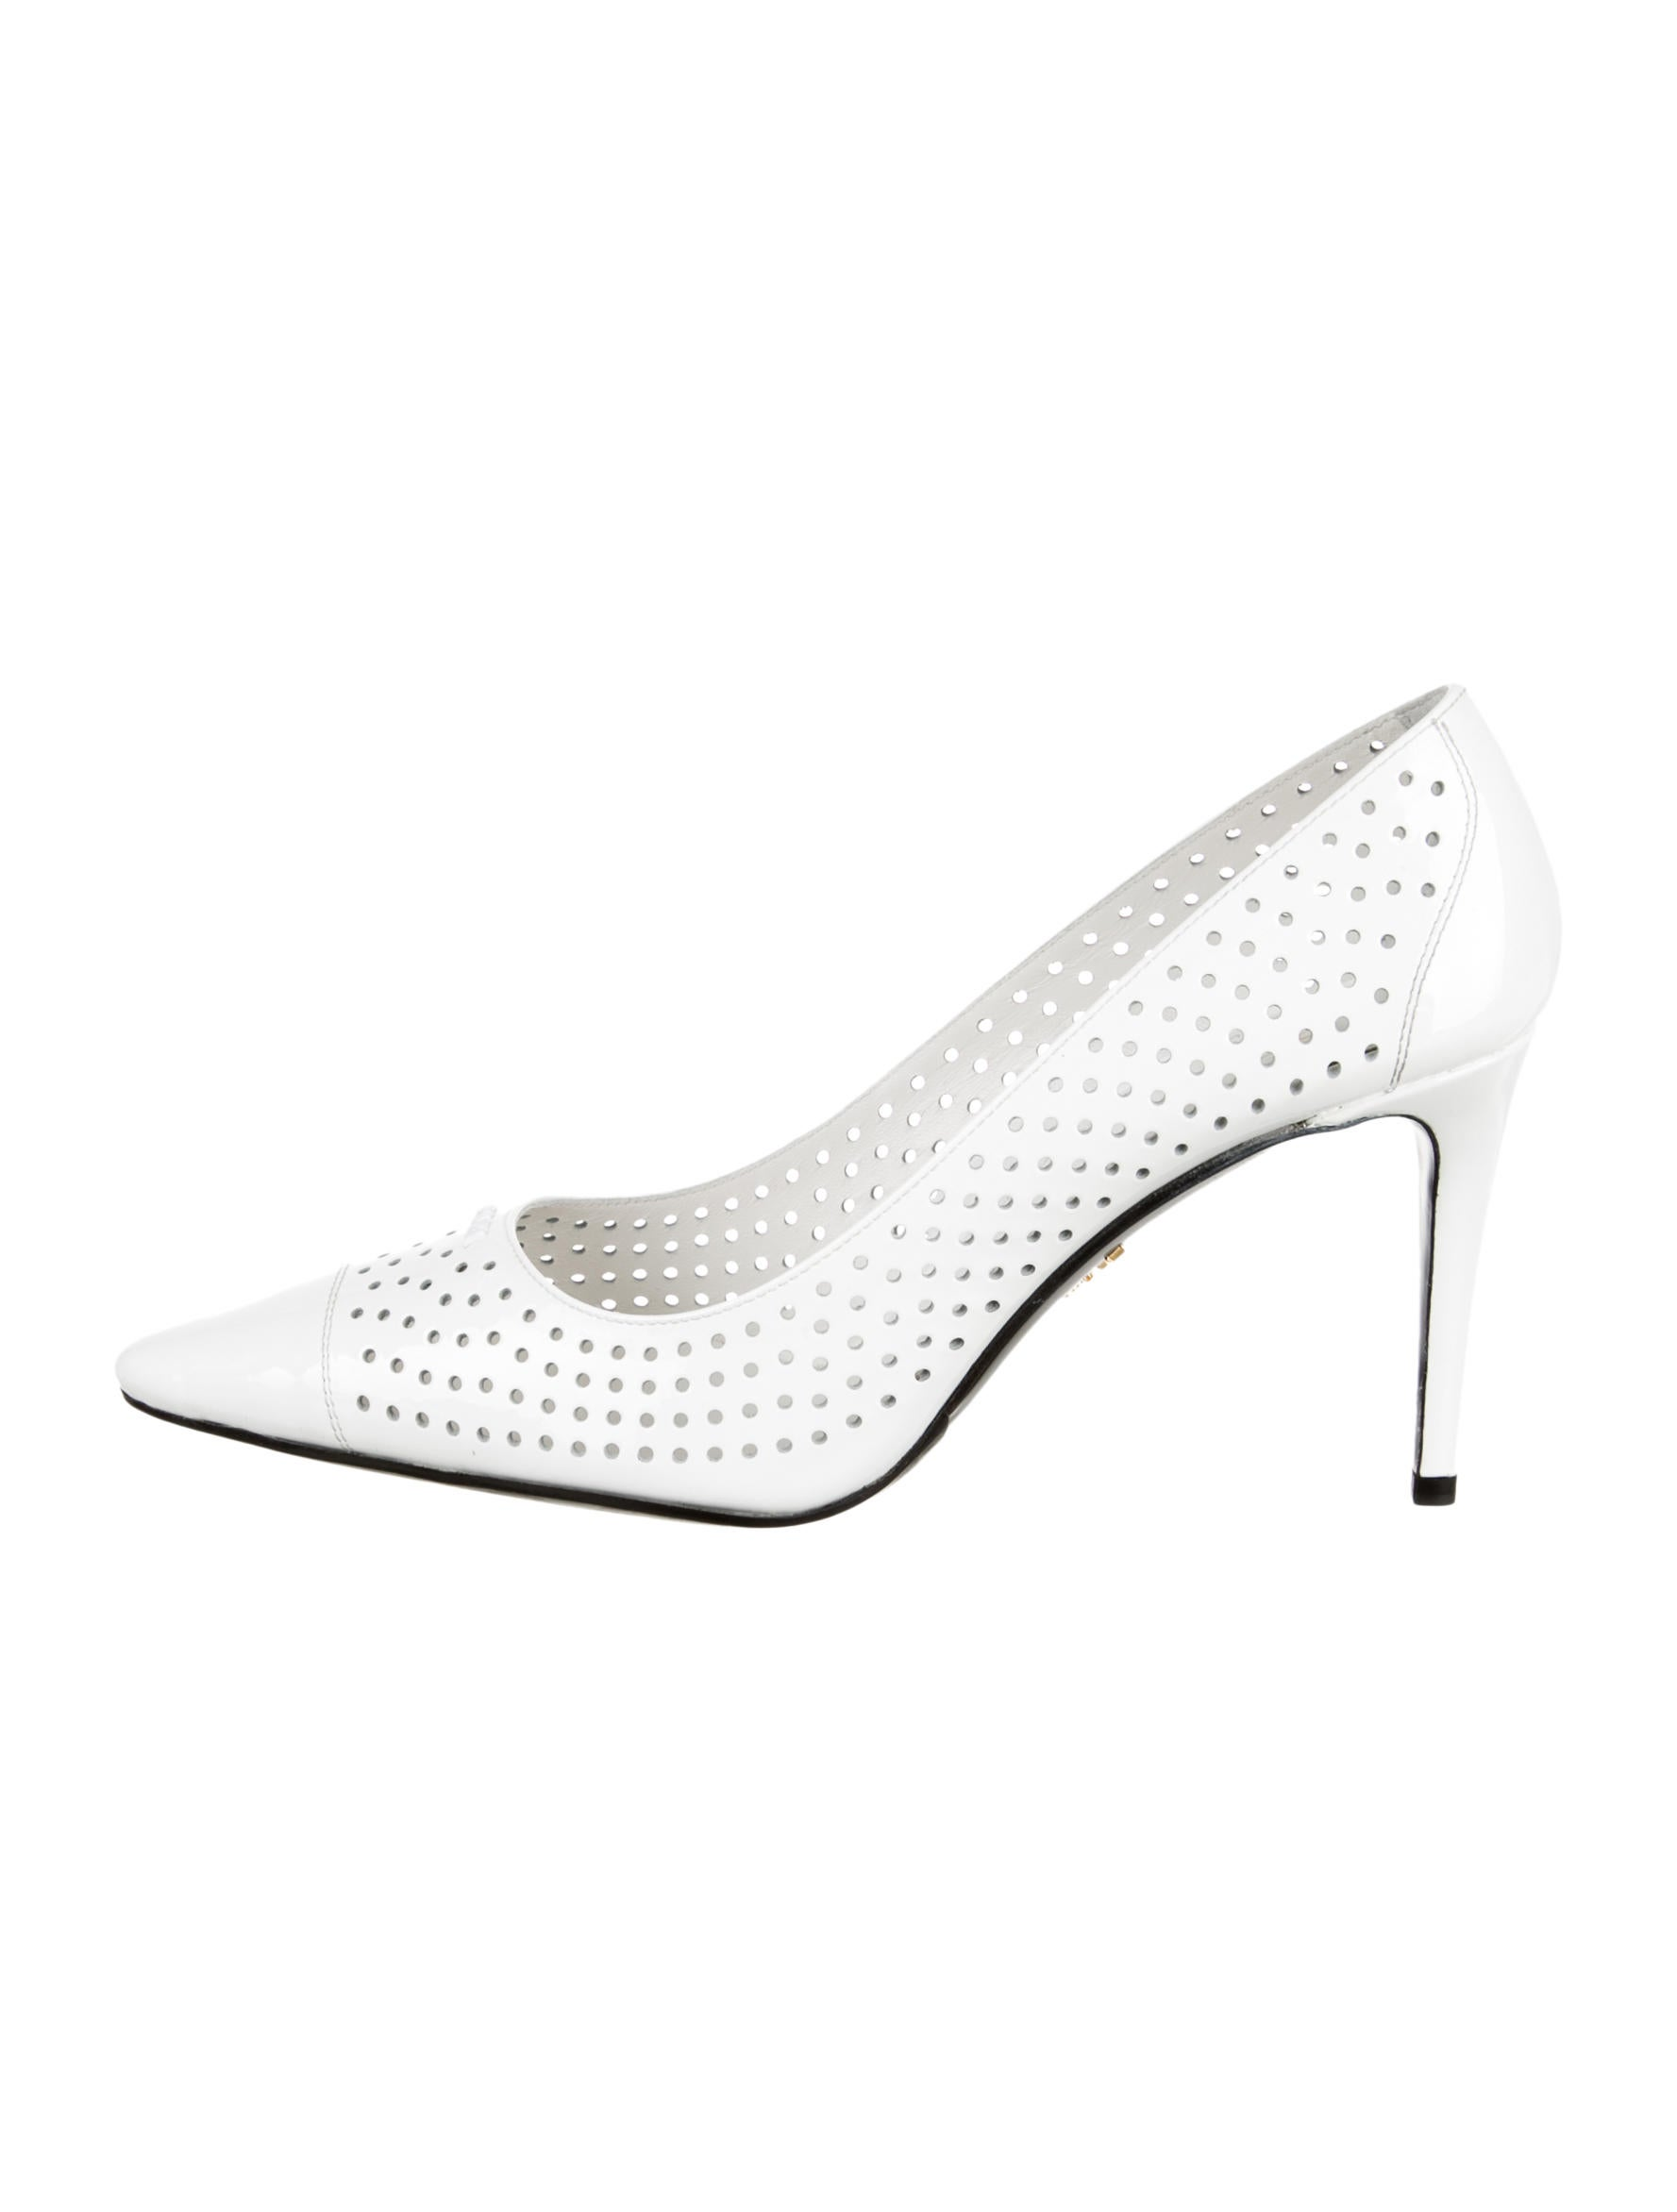 Prada Perforated Peep-Toe Pumps w/ Tags latest collections cheap online big sale online discount sale ZpHMI5Q3